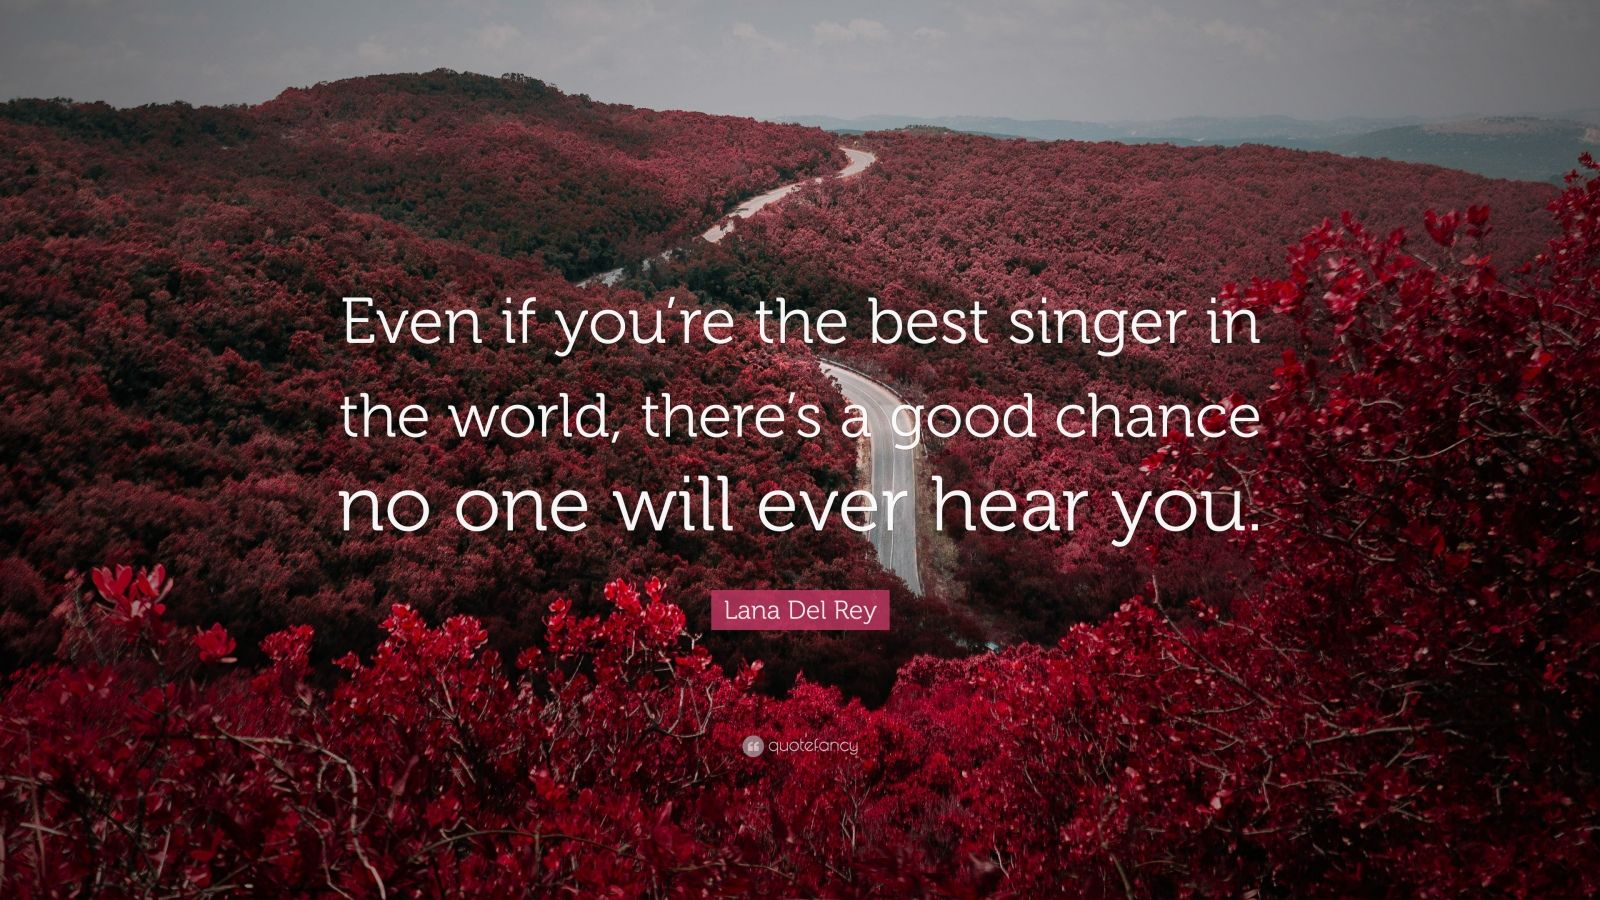 """Lana Del Rey Quote: """"Even if you're the best singer in the world, there's a good chance no one will ever hear you."""""""